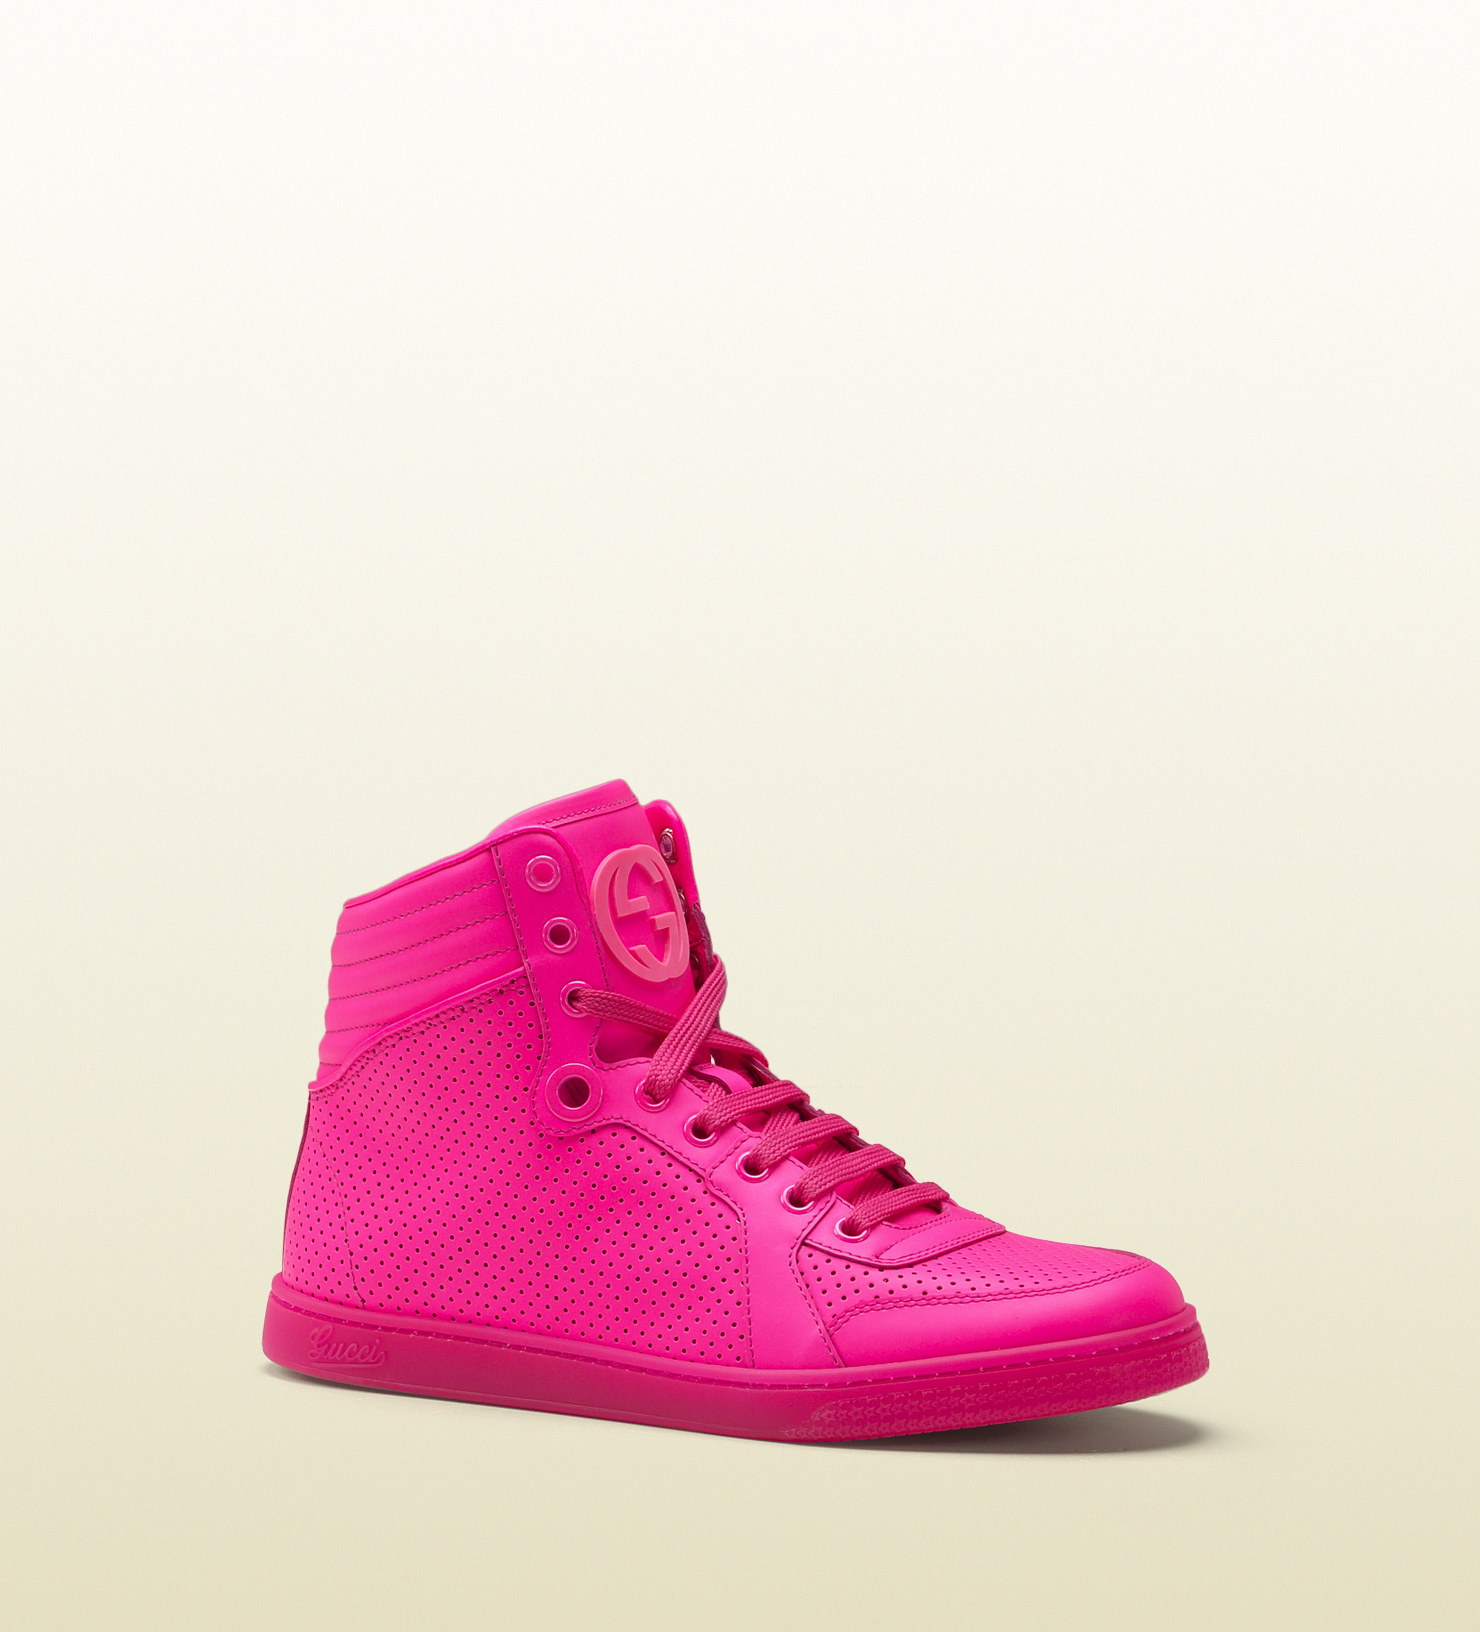 Lyst - Gucci Coda Neon Pink Leather Sneaker for Men